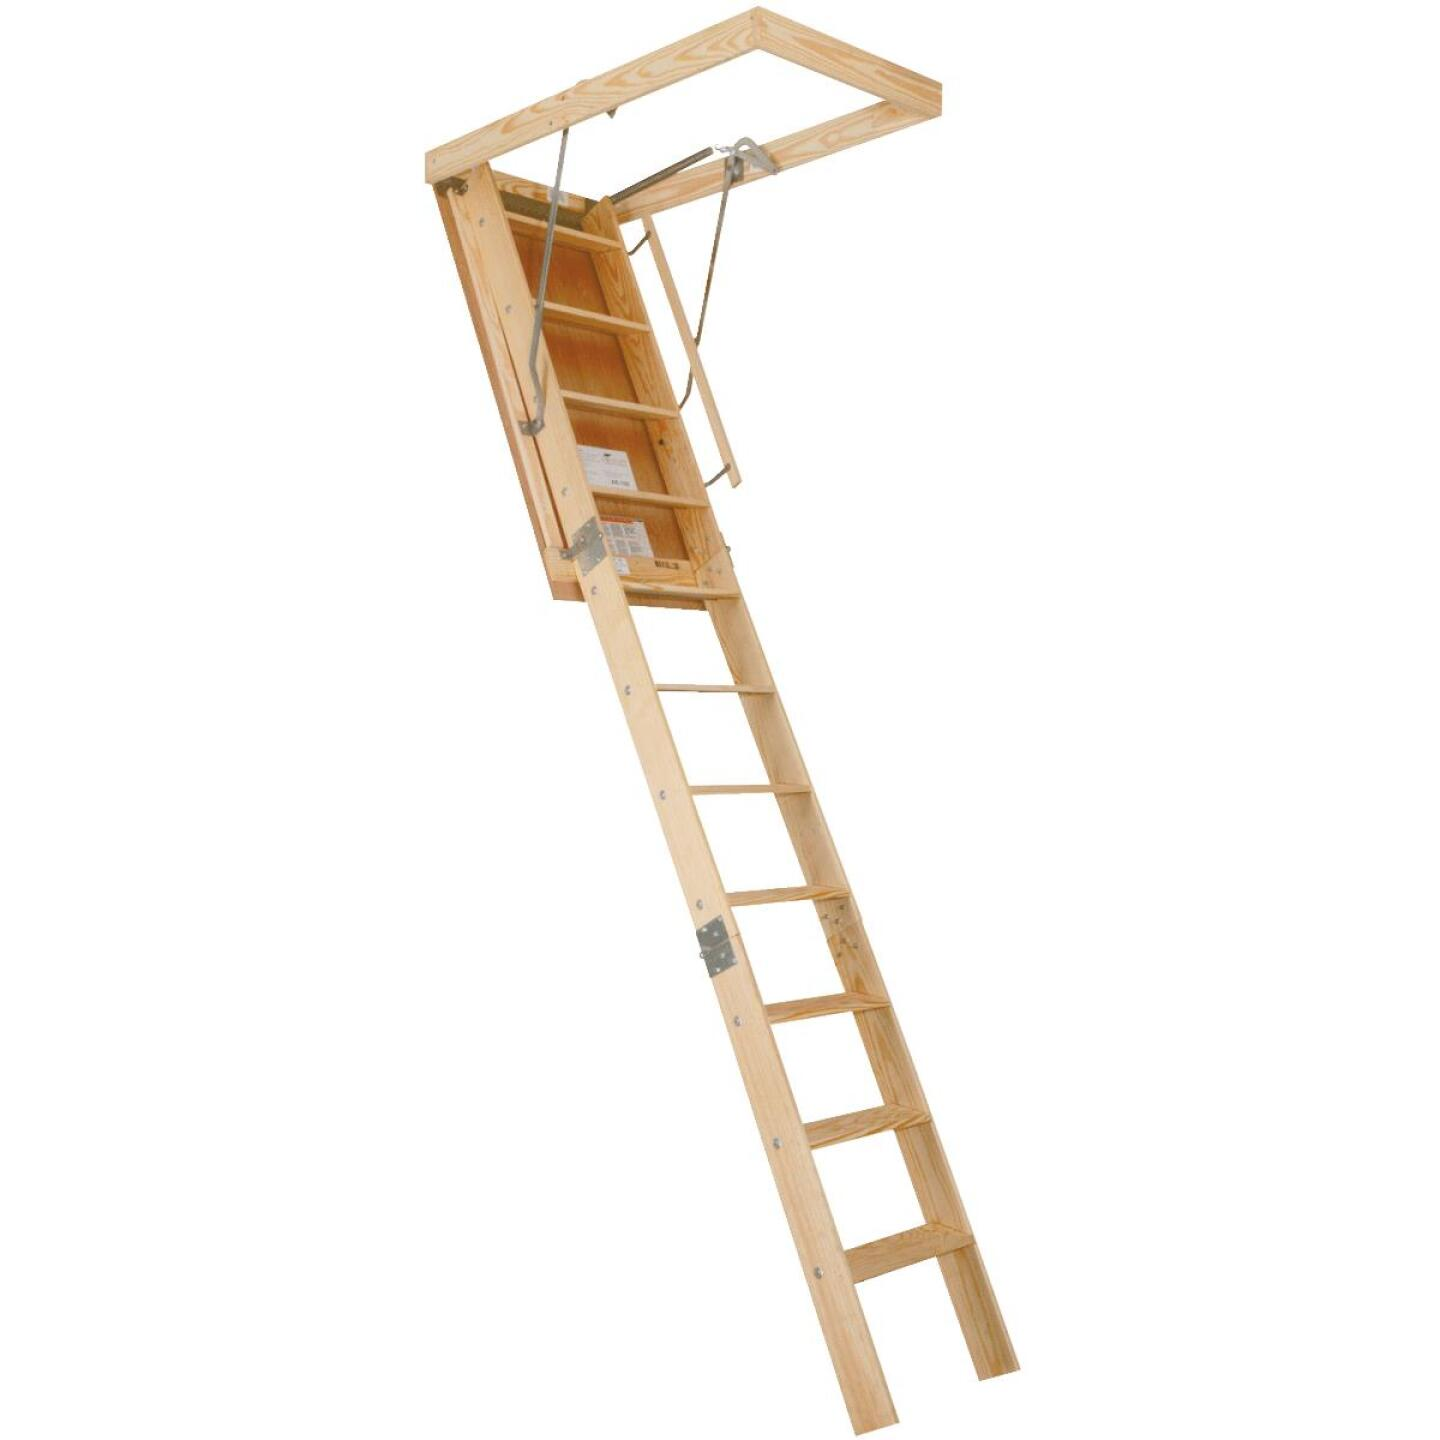 Louisville Champion 8 Ft. 9 In. to 10 In., 25-1/2 In. x 54 In. Wood Attic Stairs, 300 Lb. Load Image 1